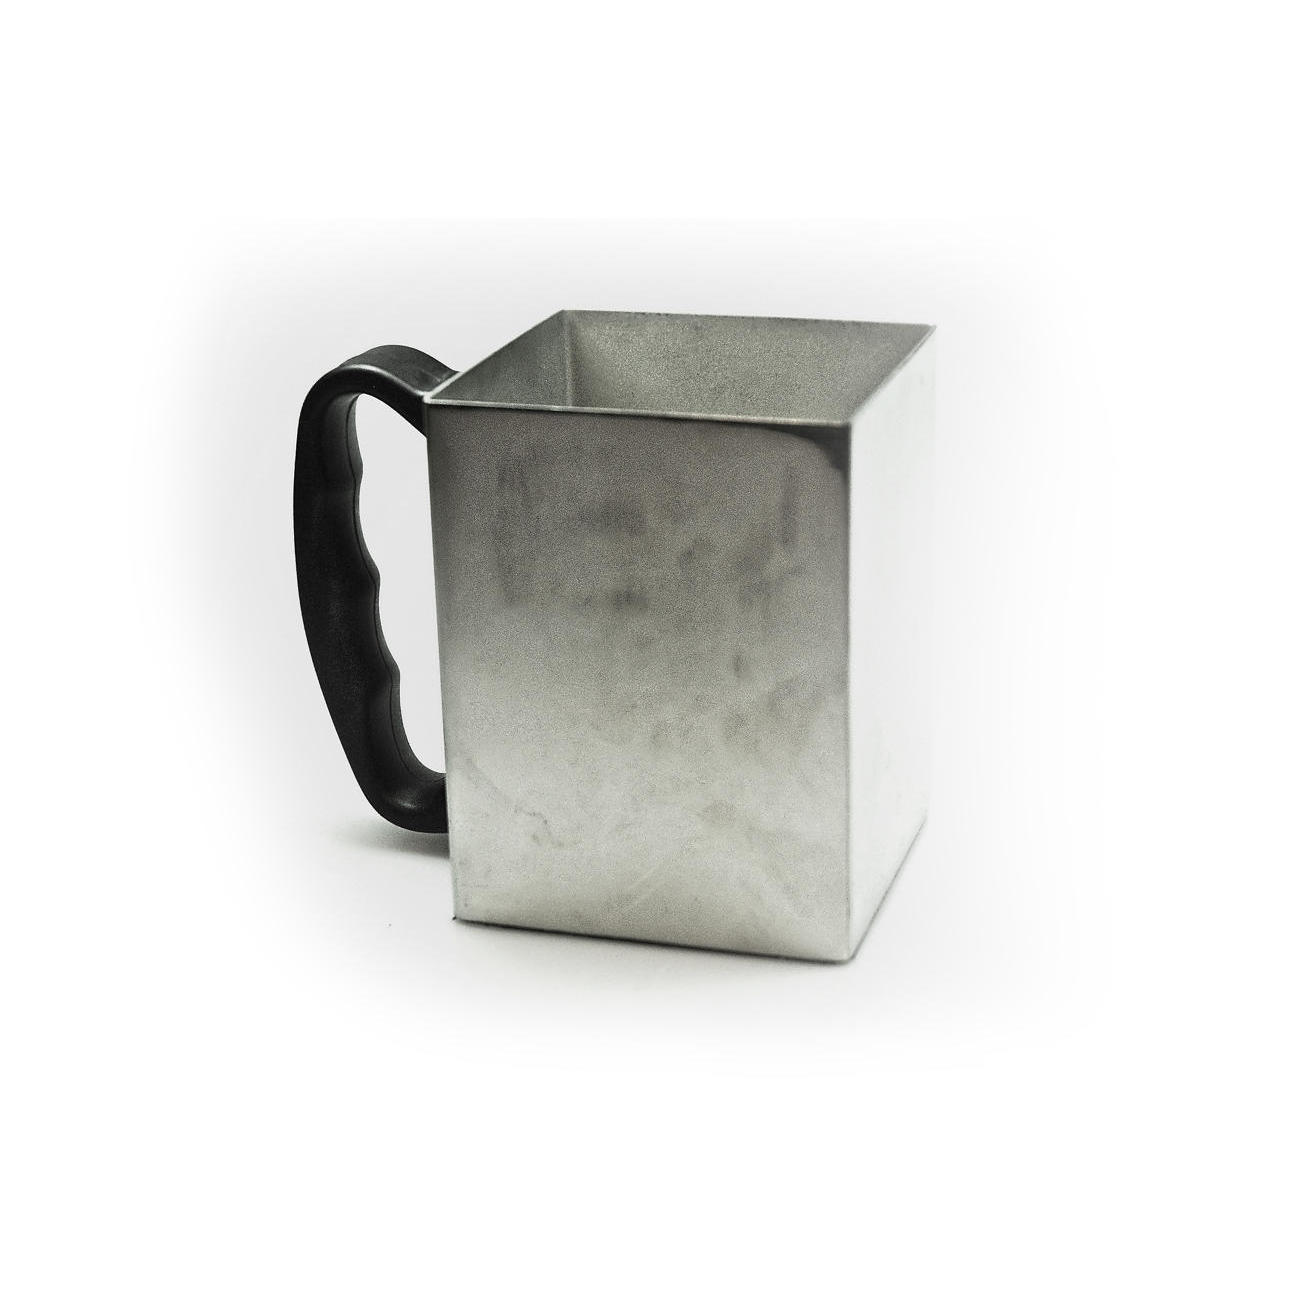 Stainless Steel 5 Ltr Milk Carton Holder Ottawa Shop Ma